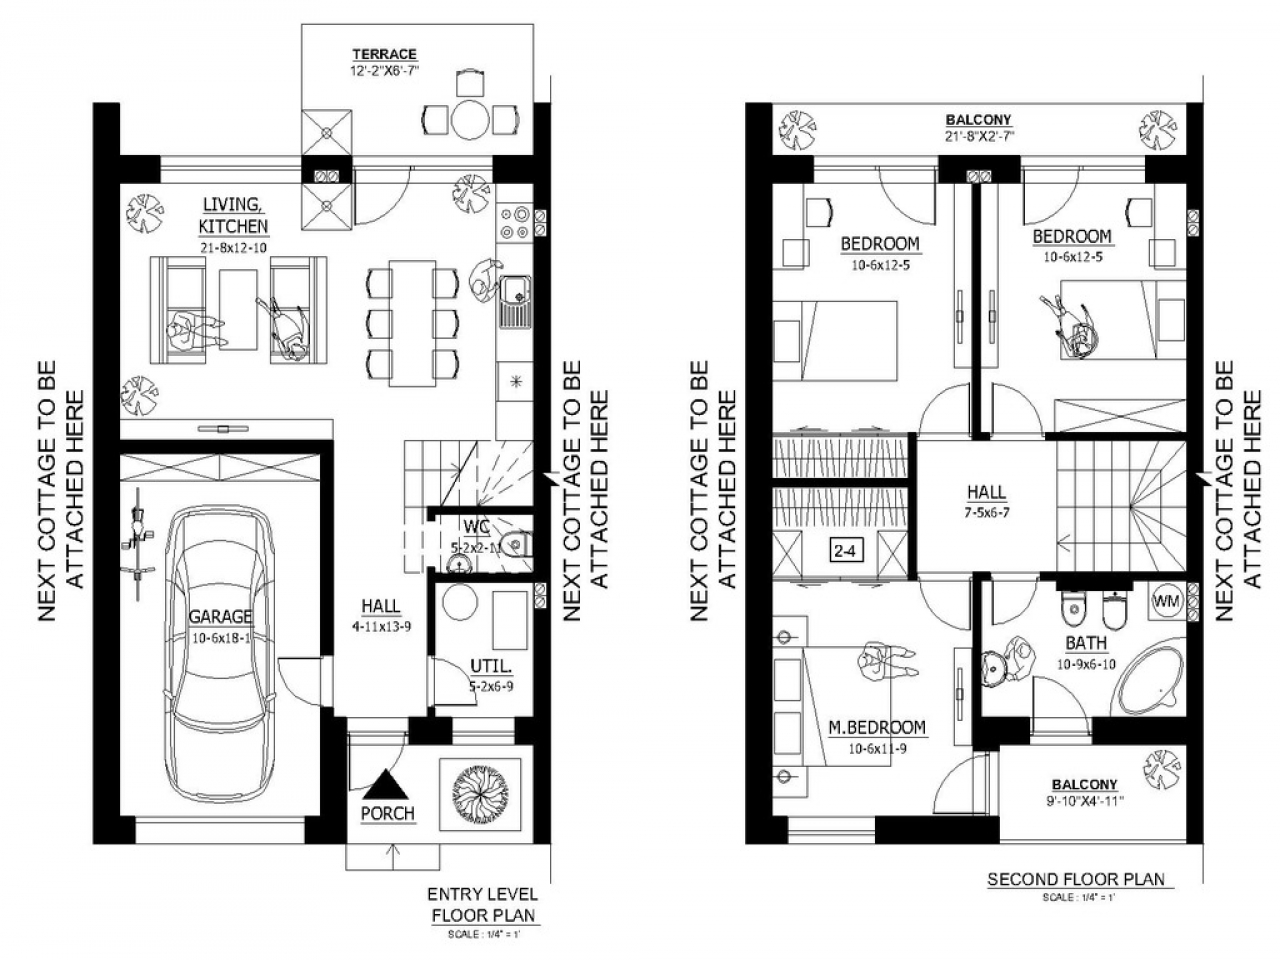 1000 sq ft house plans small house plans under 1000 sq ft for Small house plans with garage